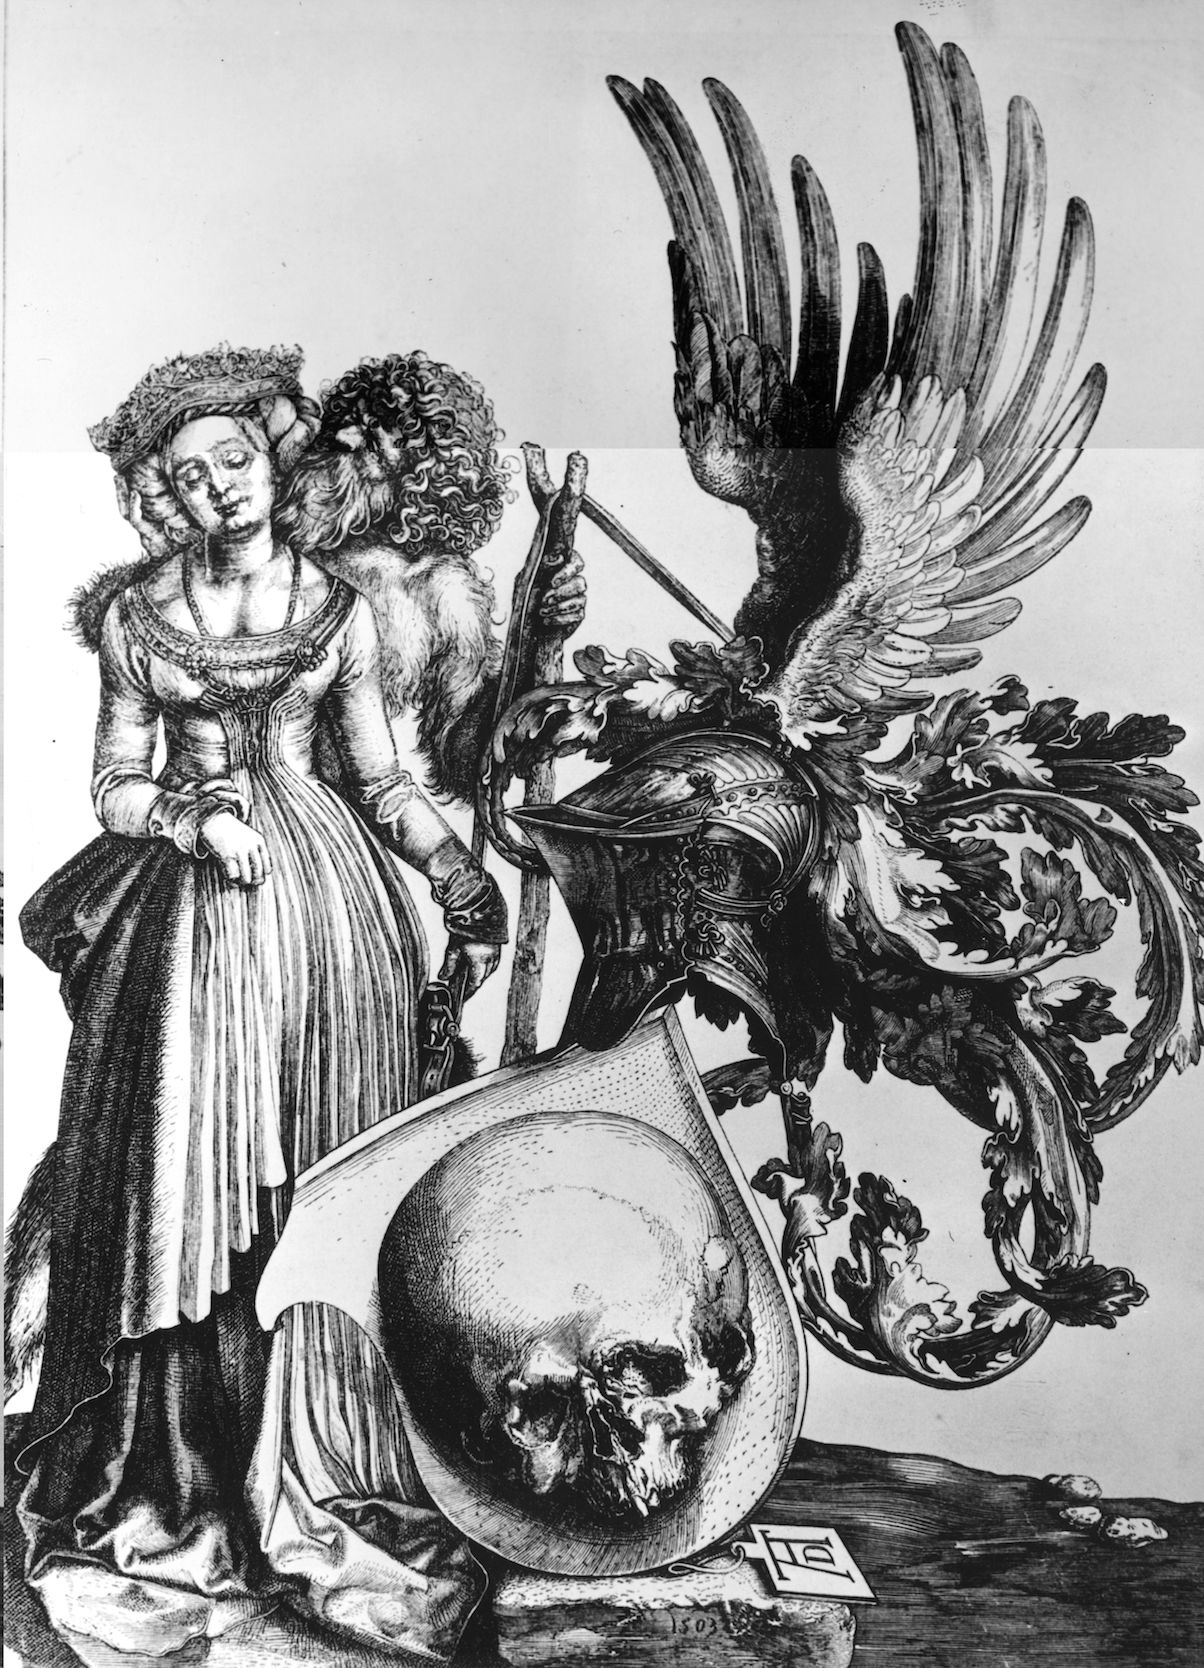 A black and white illustration.